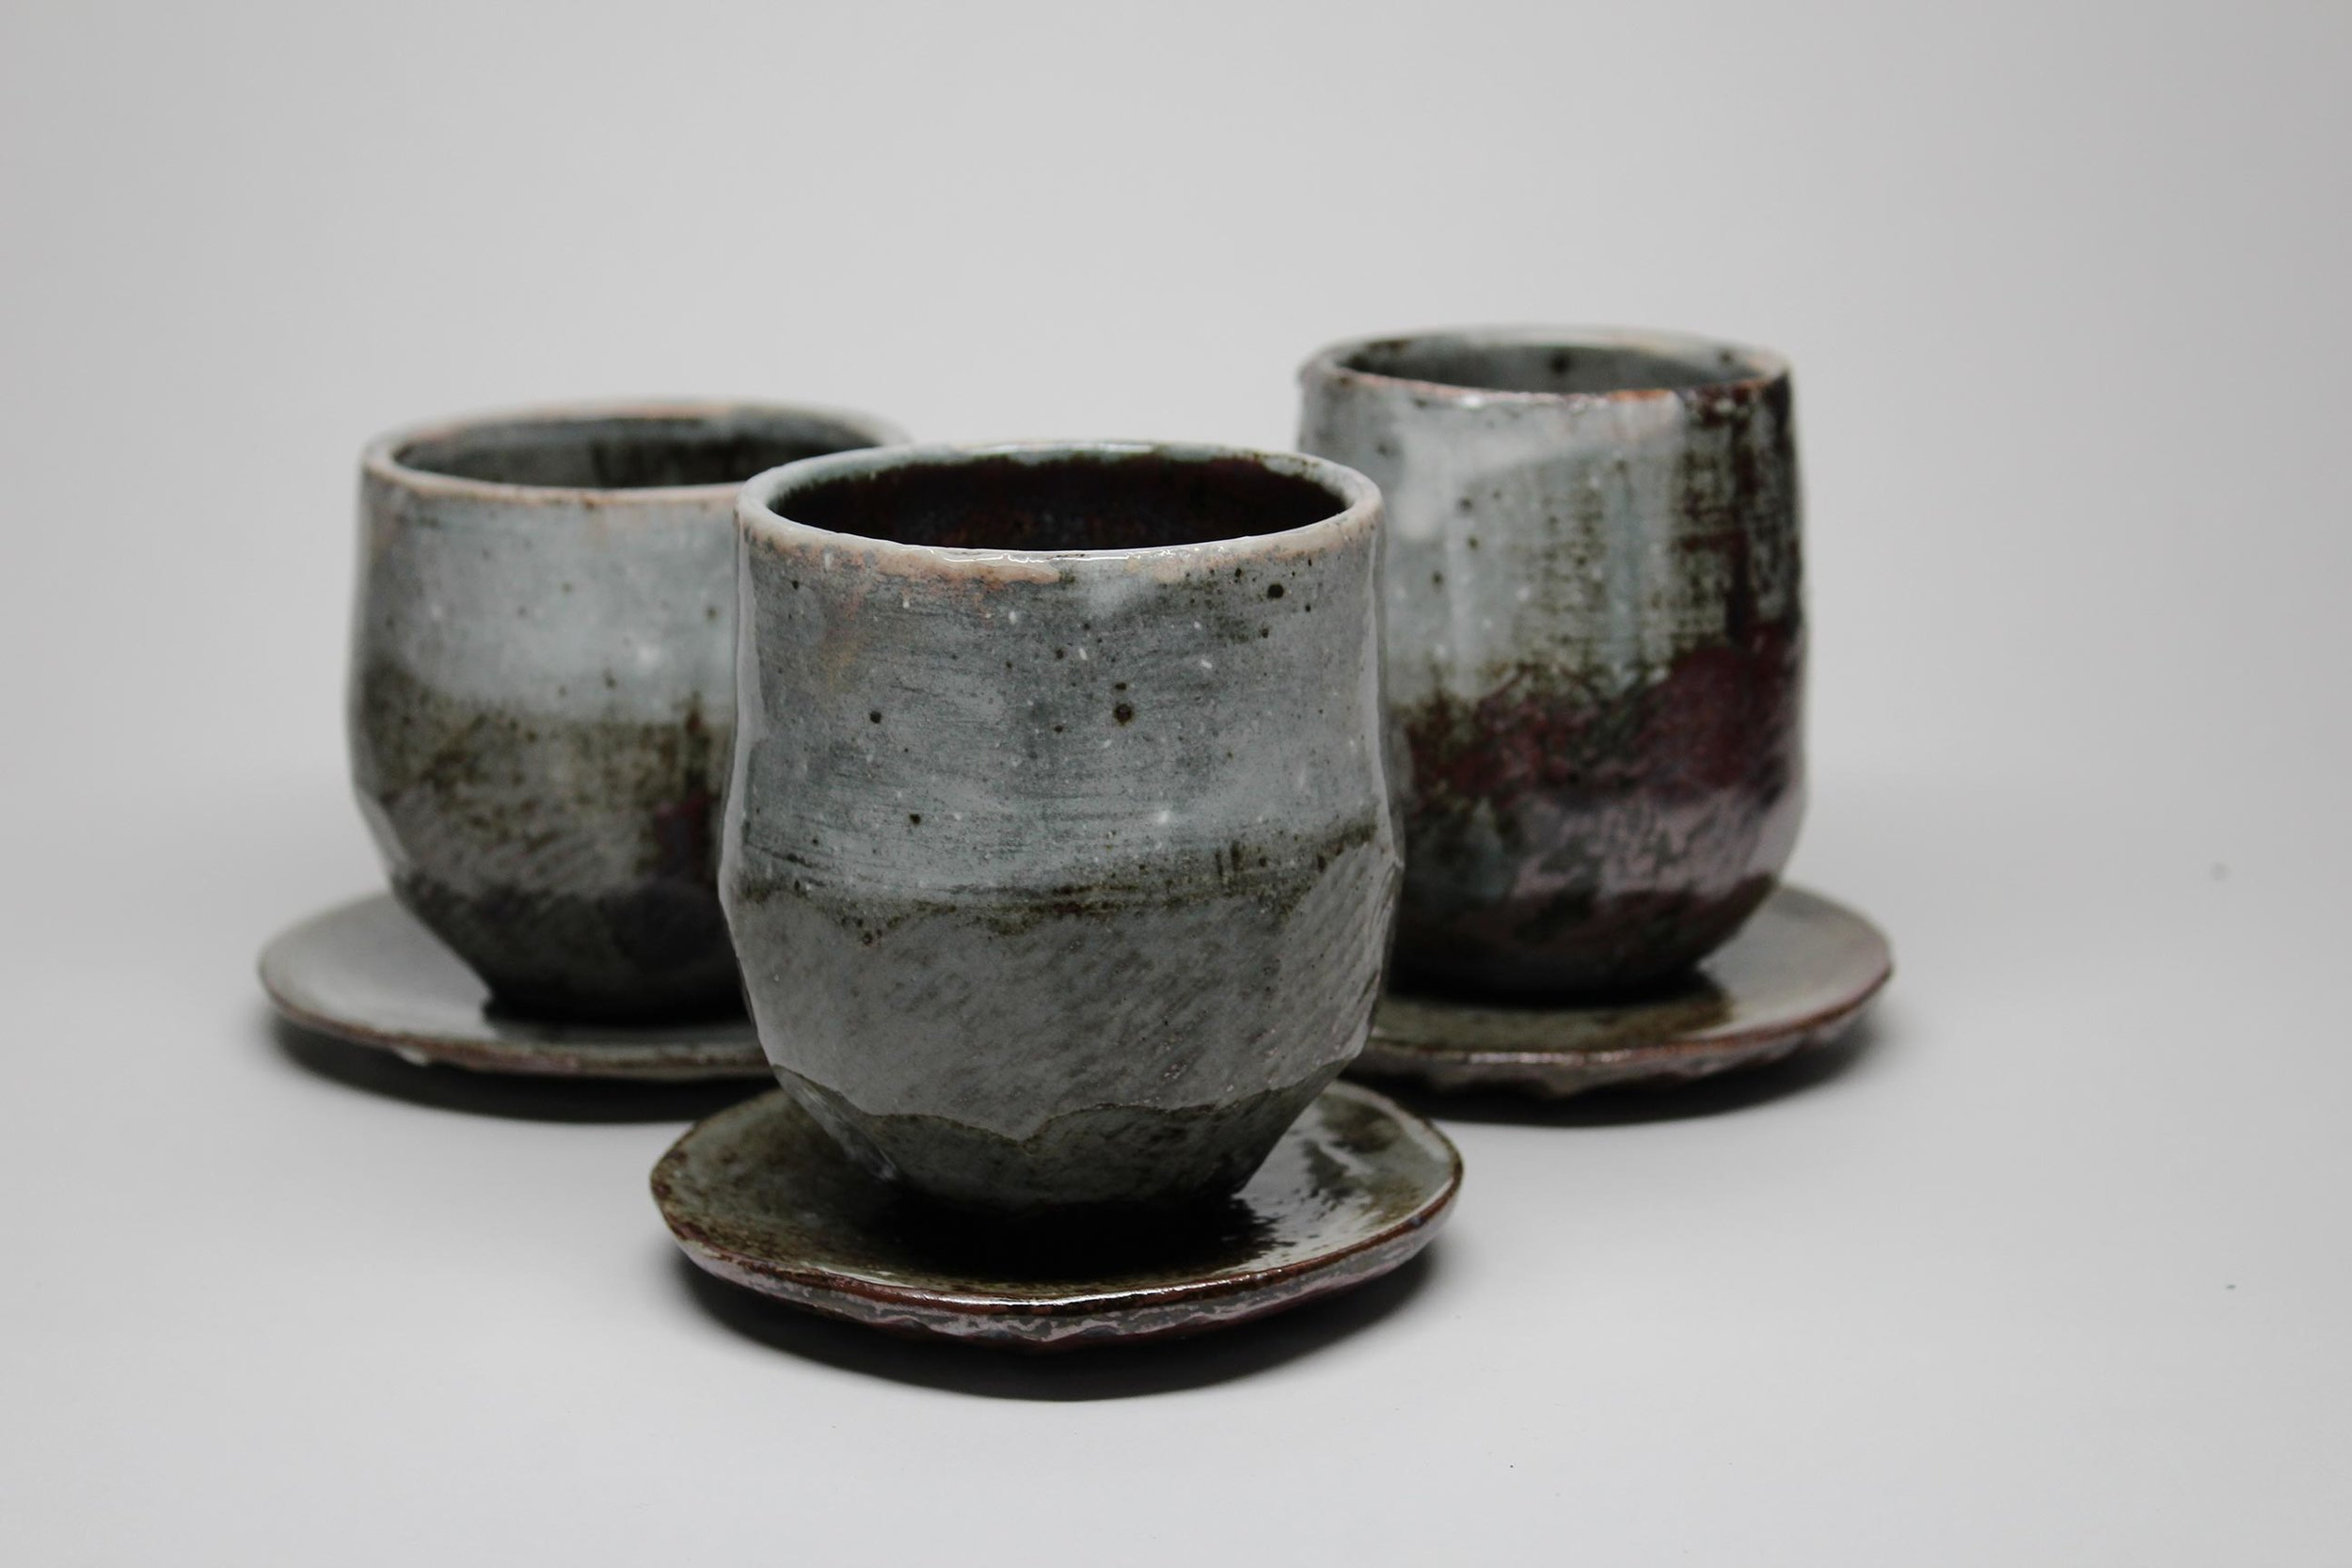 Horn_Cup and Saucer Trio_Trown Stoneware_5 inches tall.jpg